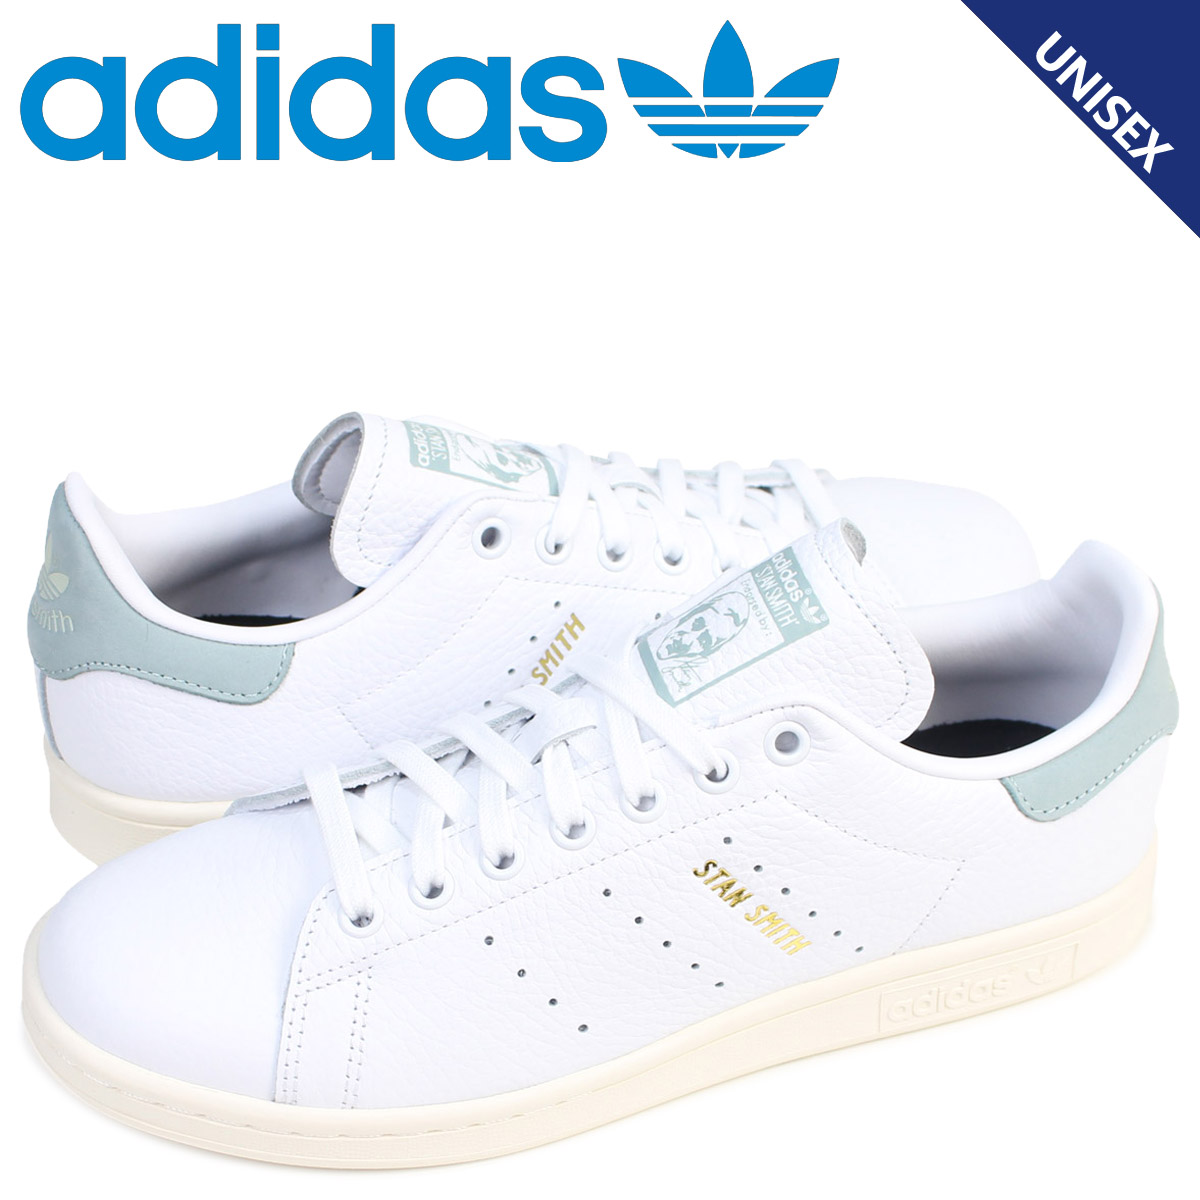 best service 377b3 dd87c adidas Stan Smith Adidas originals sneakers STAN SMITH men gap Dis BZ0470  shoes white [the 8/1 additional arrival] [177]